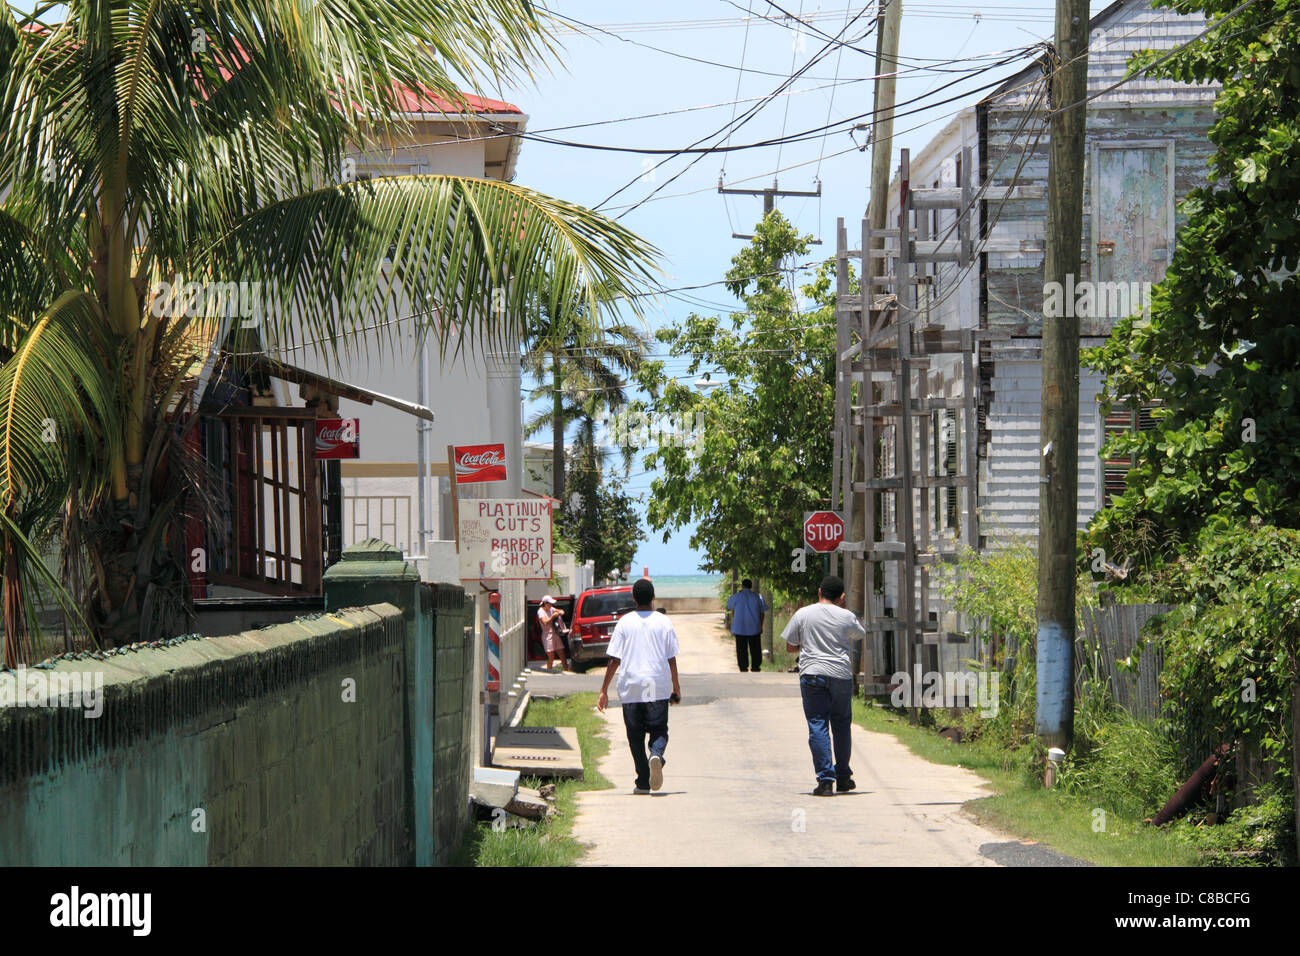 South Street, Belize City, Belize, Caribbean, Central America - Stock Image